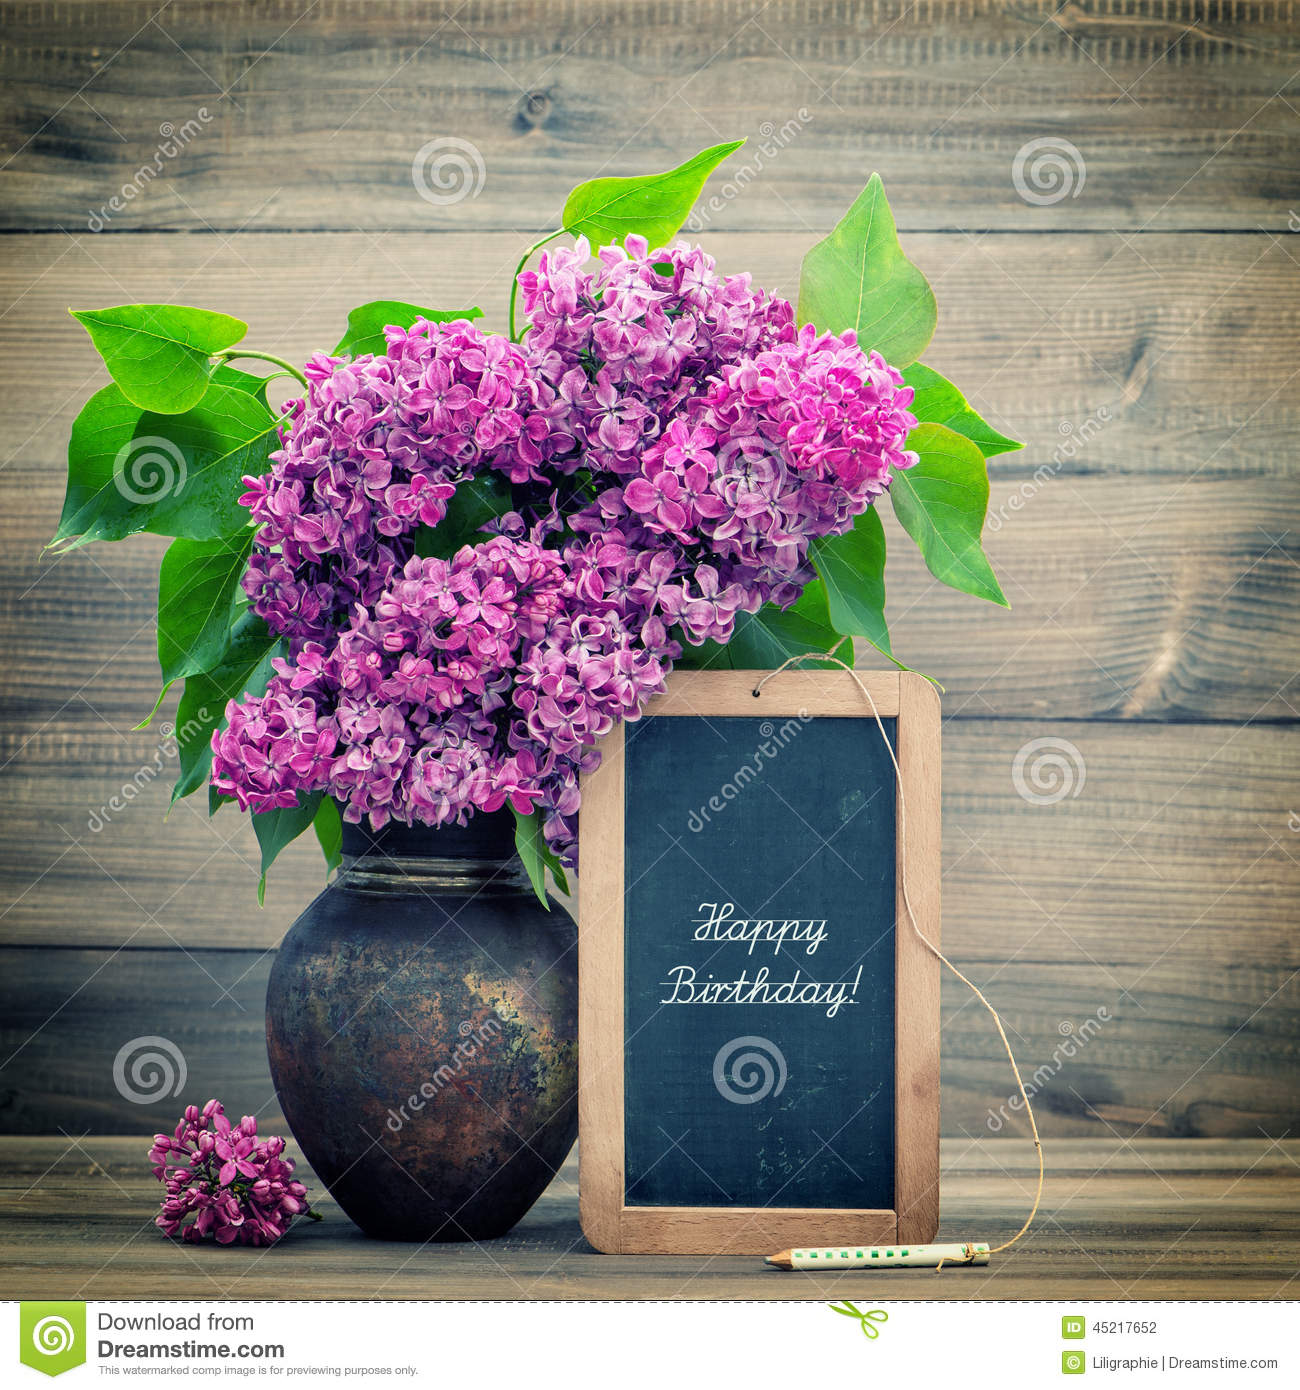 Download Bouquet Of Lilac Flowers Blackboard With Text Happy Birthday Stock Photo